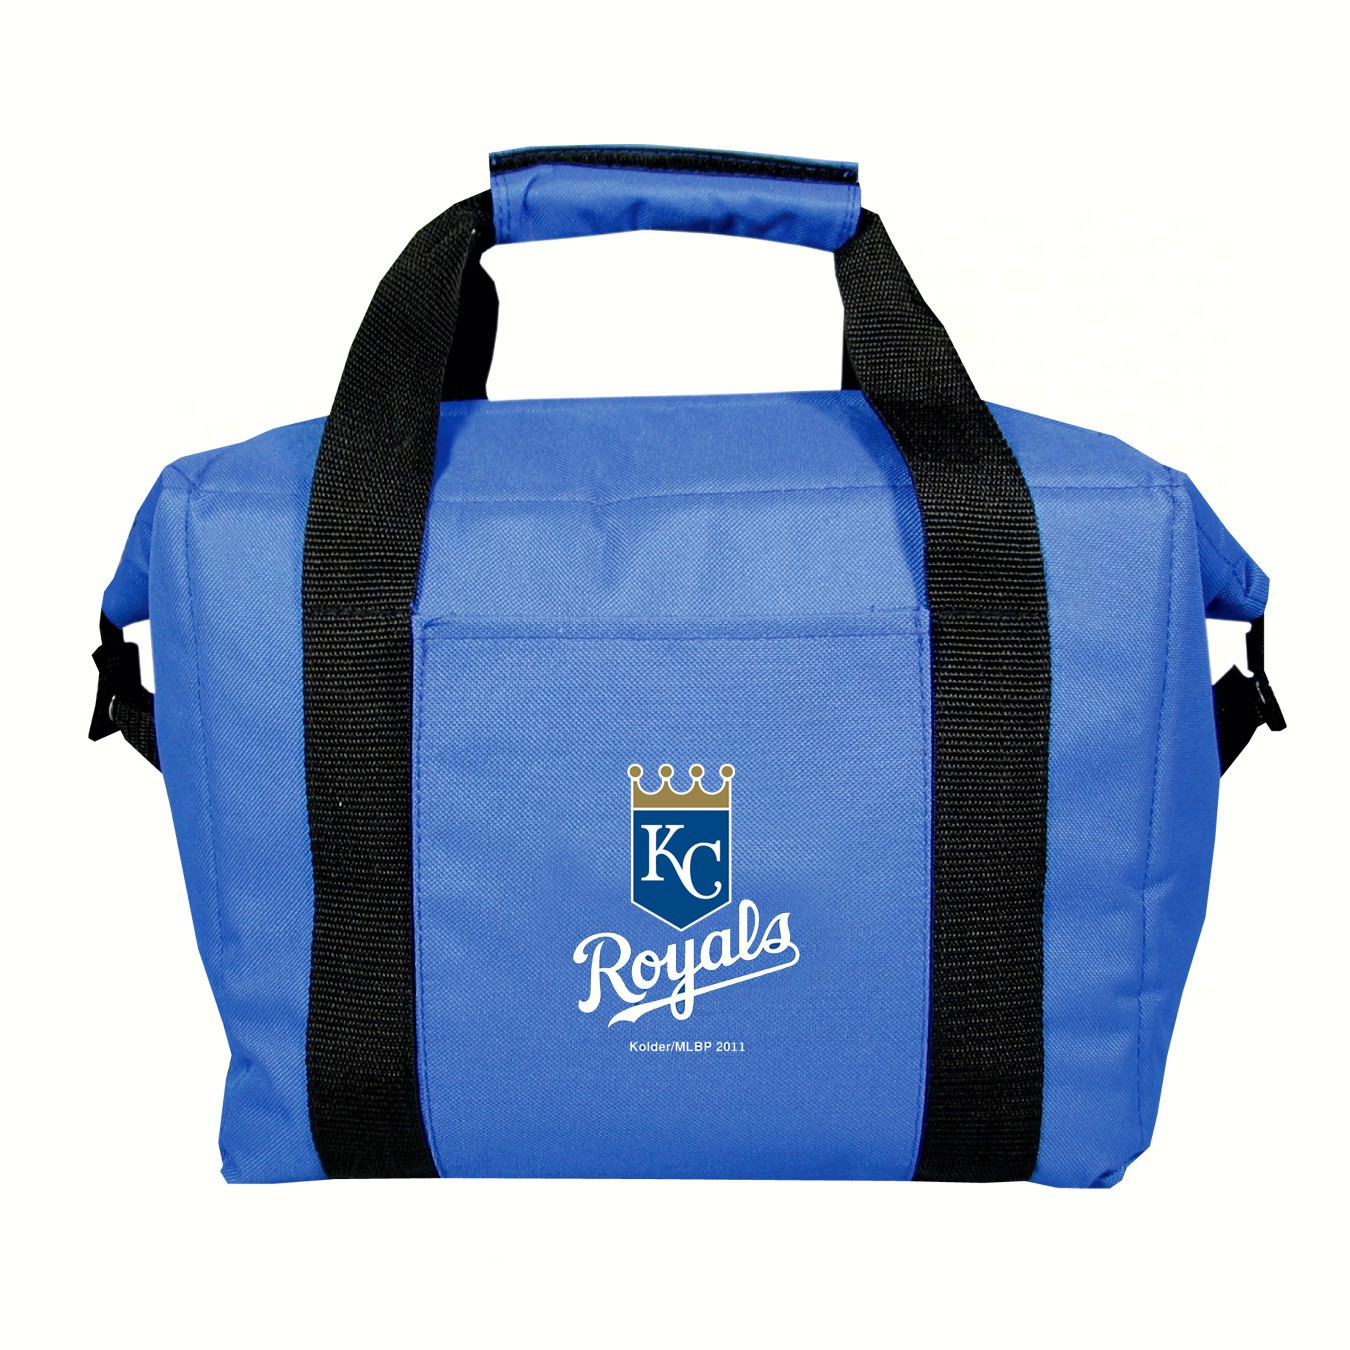 Kooler Bag Kansas City Royals (Holds a 12 Pack)